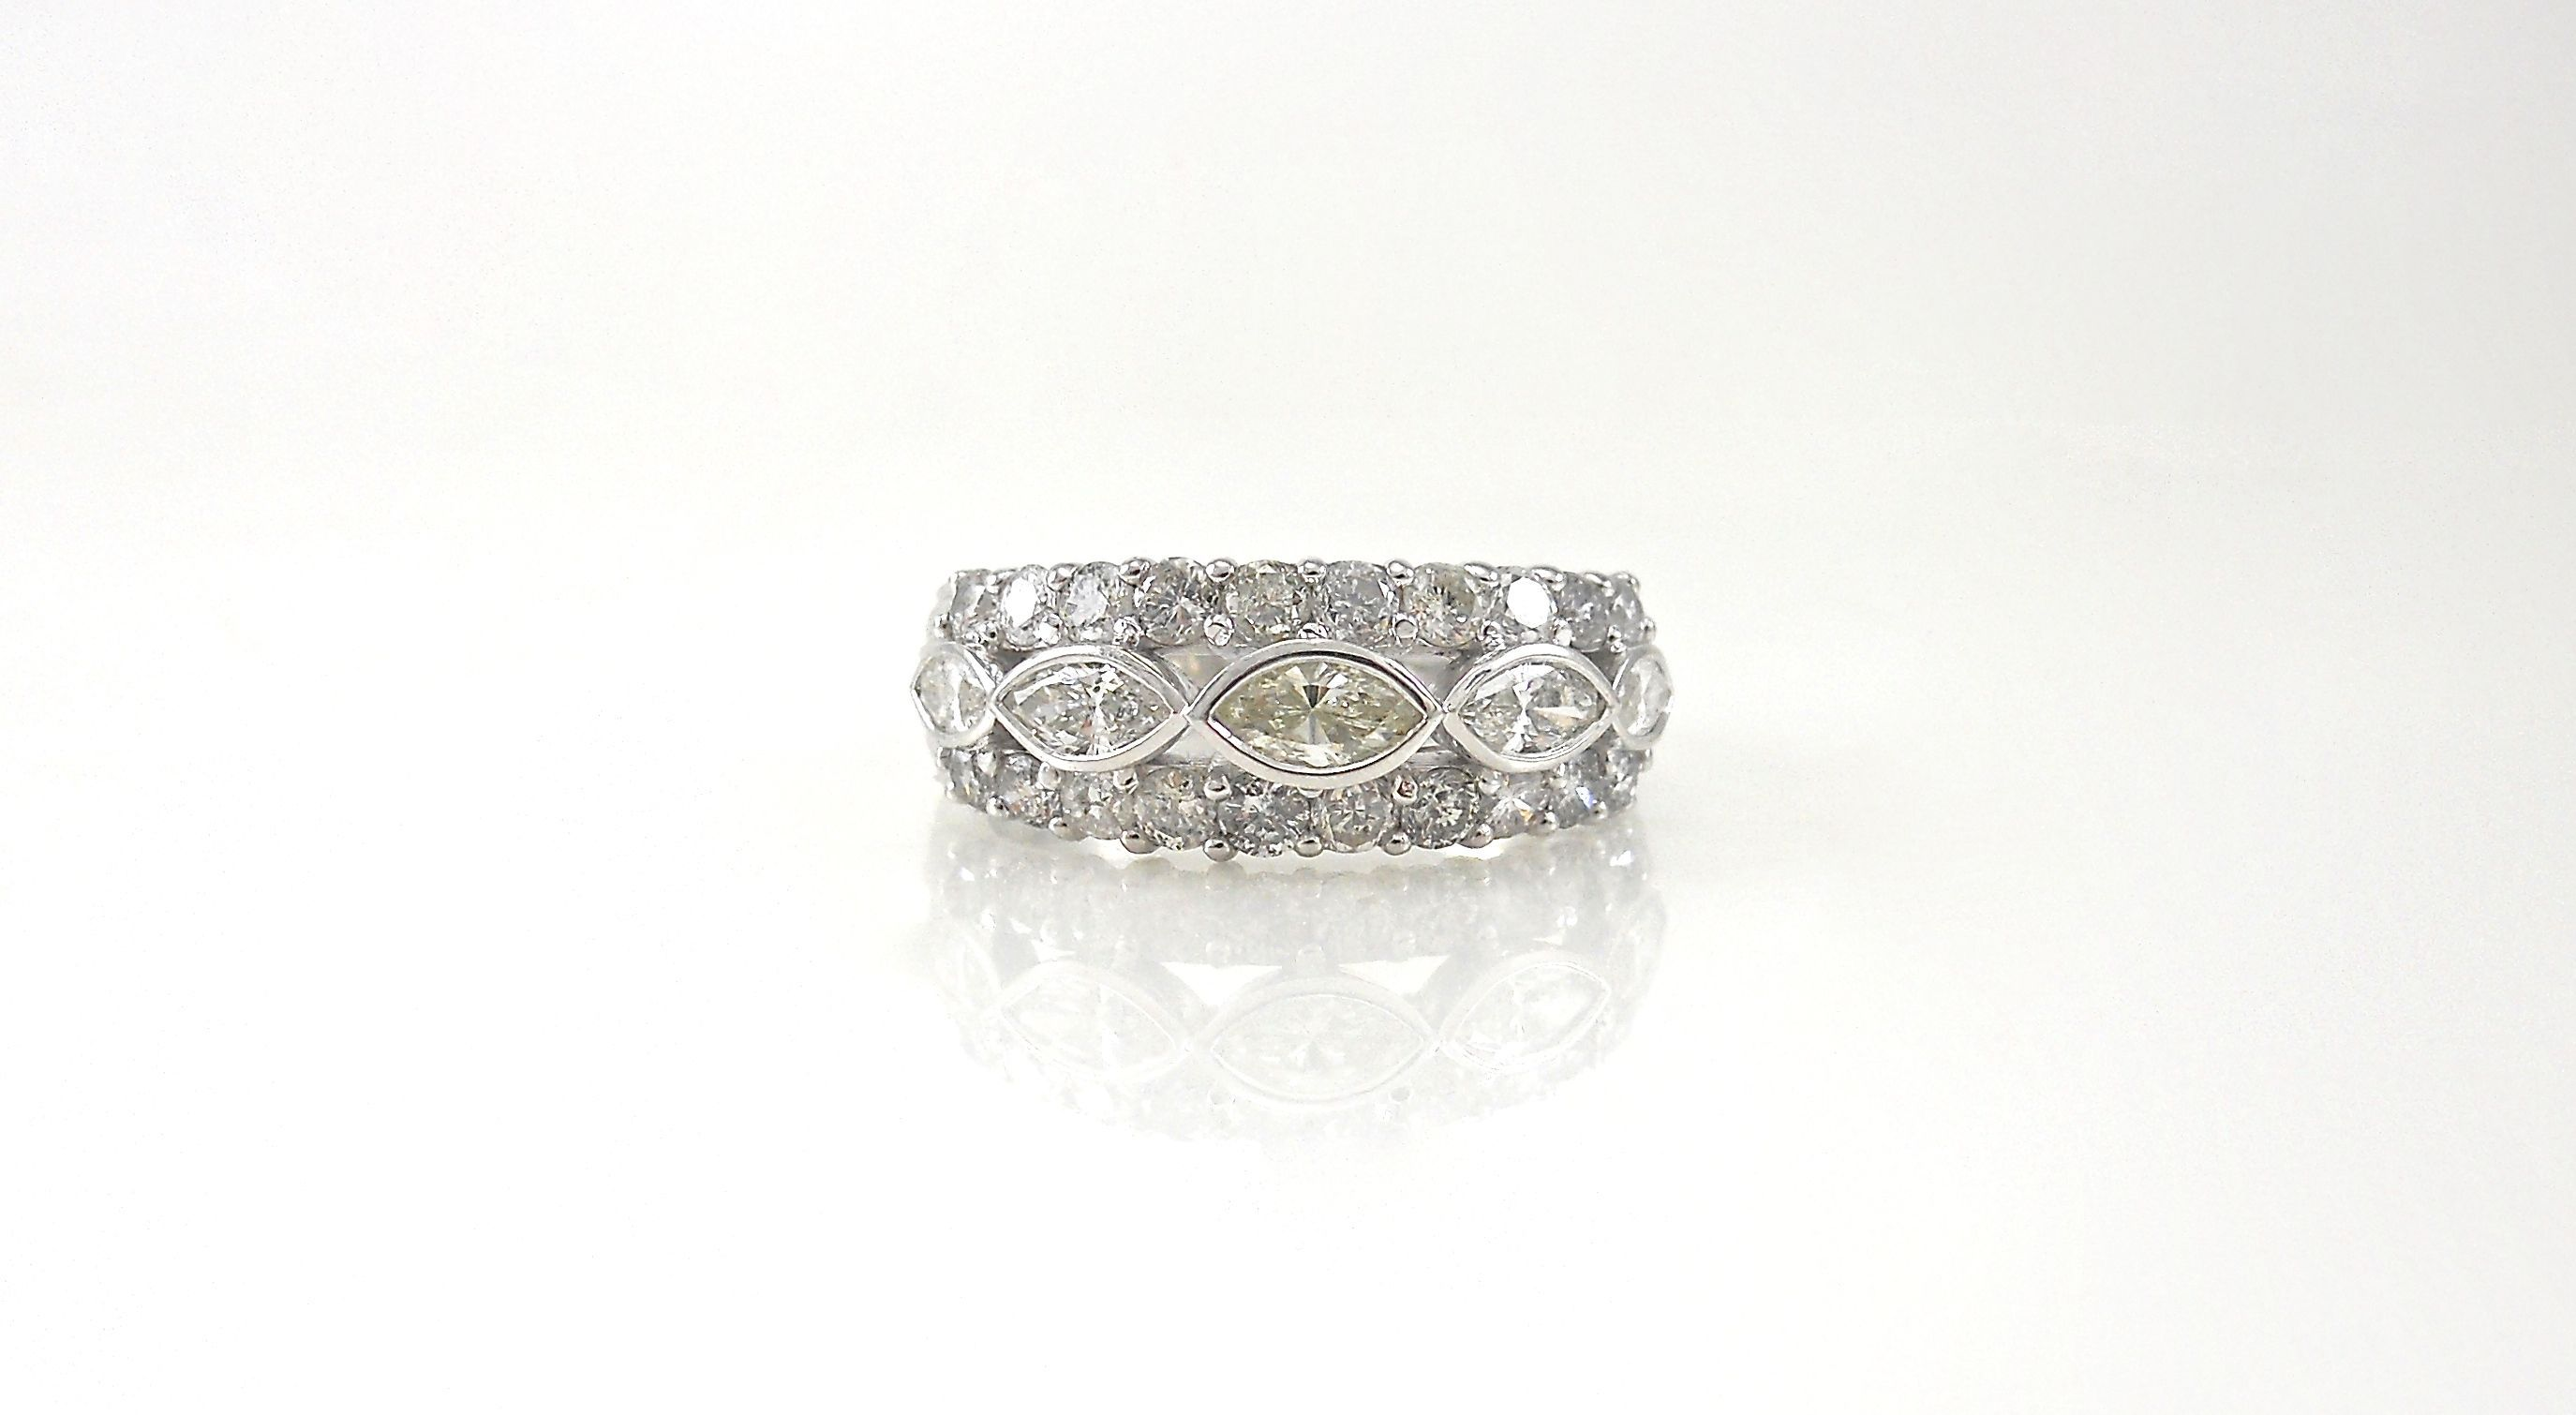 A stunning ring featuring a tailored design with a straight row of marquise diamonds at the center.